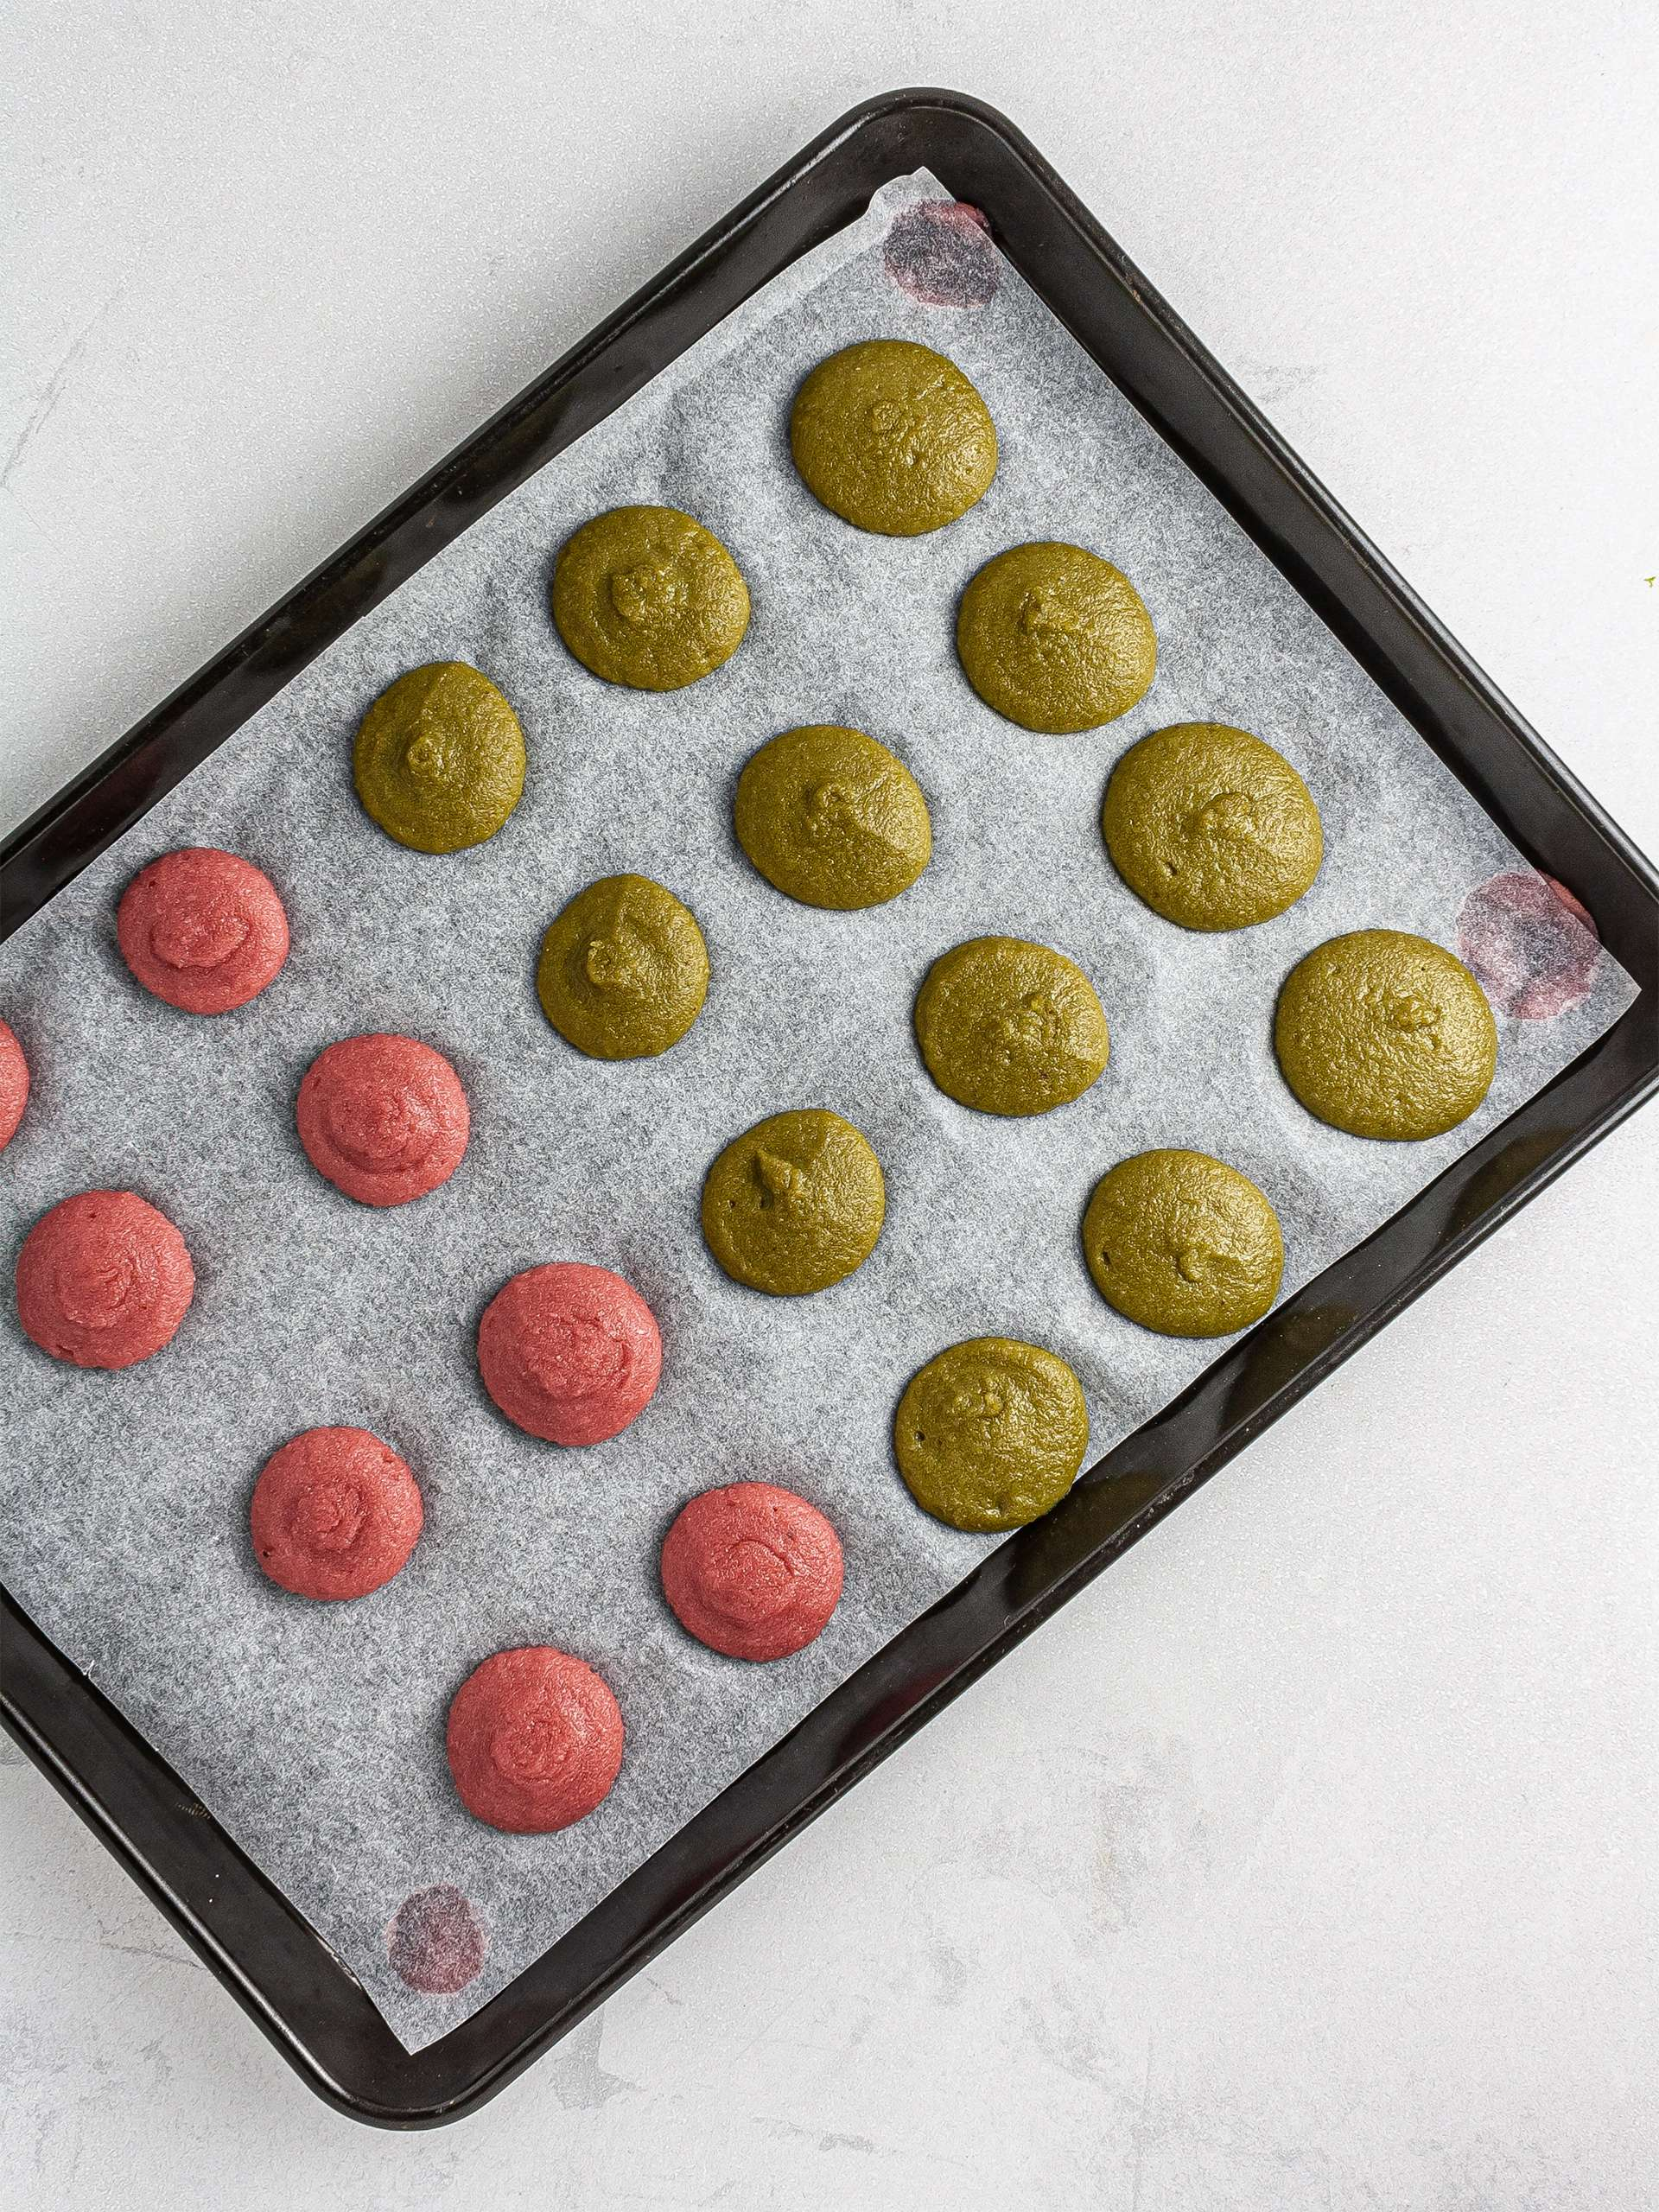 Macaron batter piped over baking tray